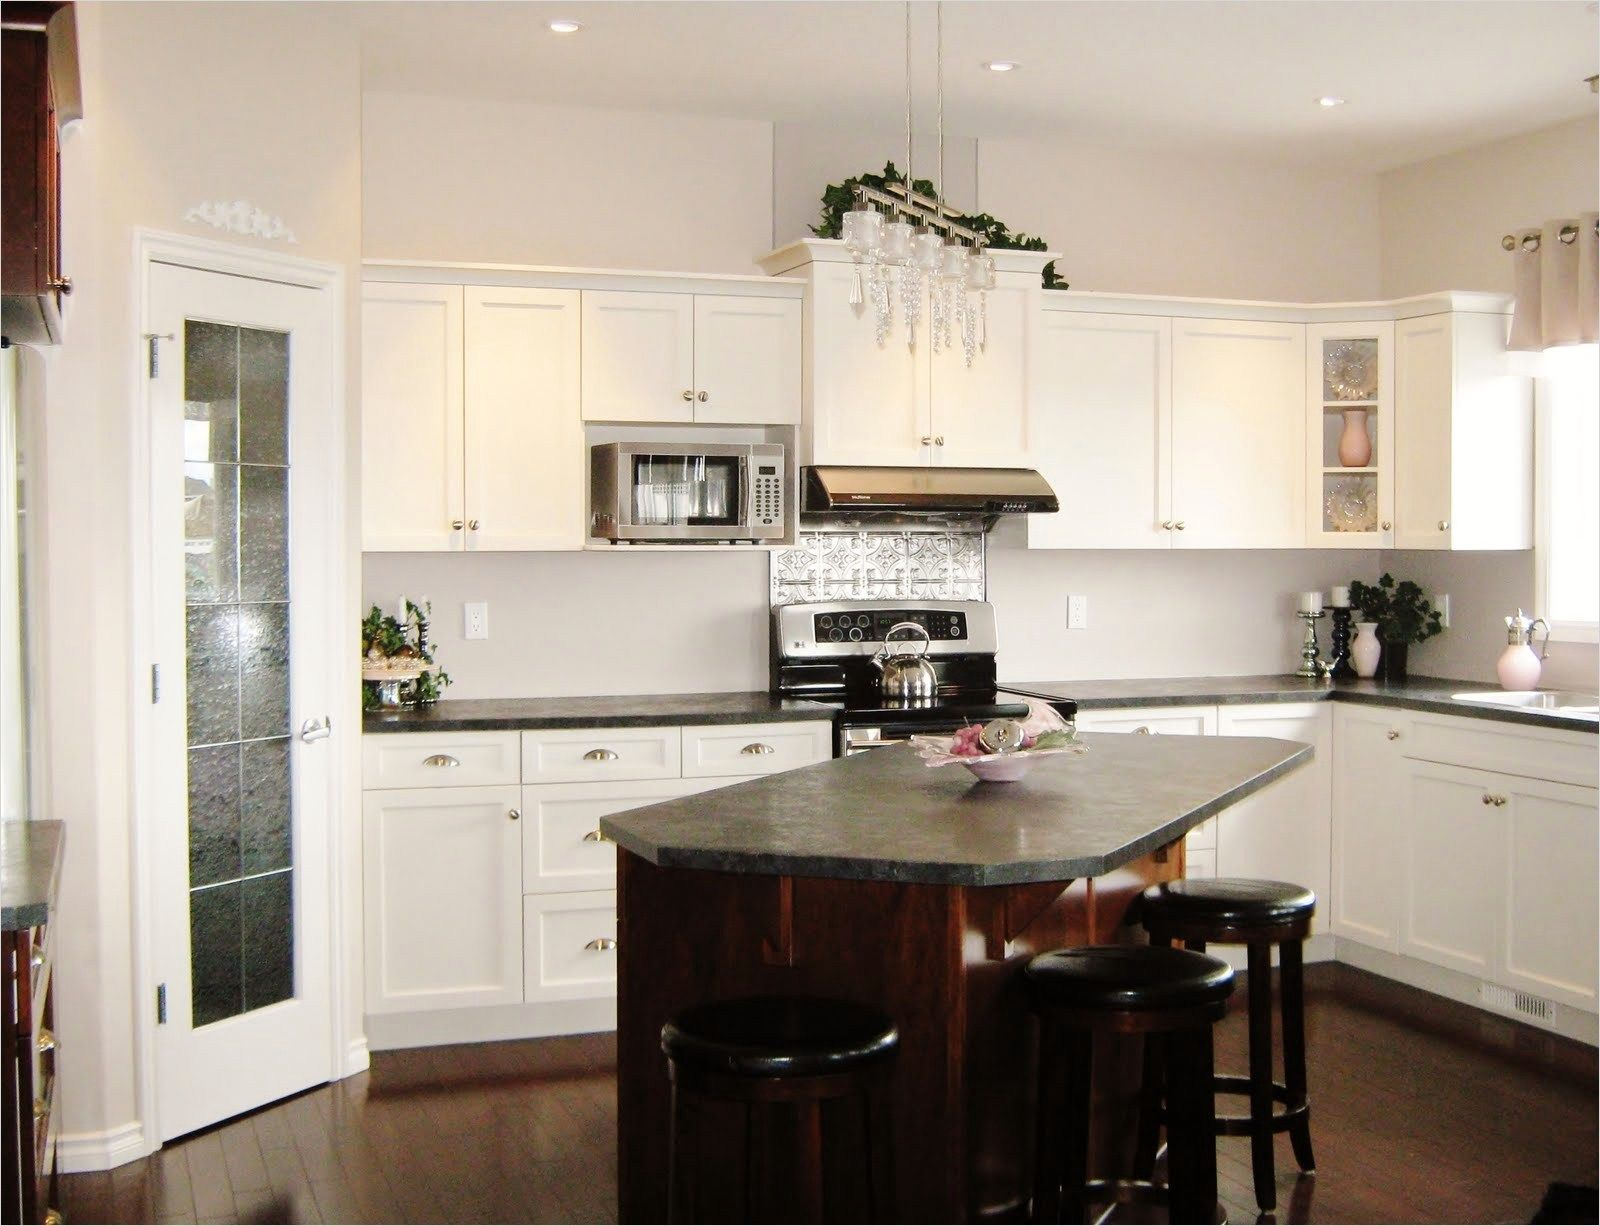 44 Perfect Ideas Small Kitchen Designs with islands That